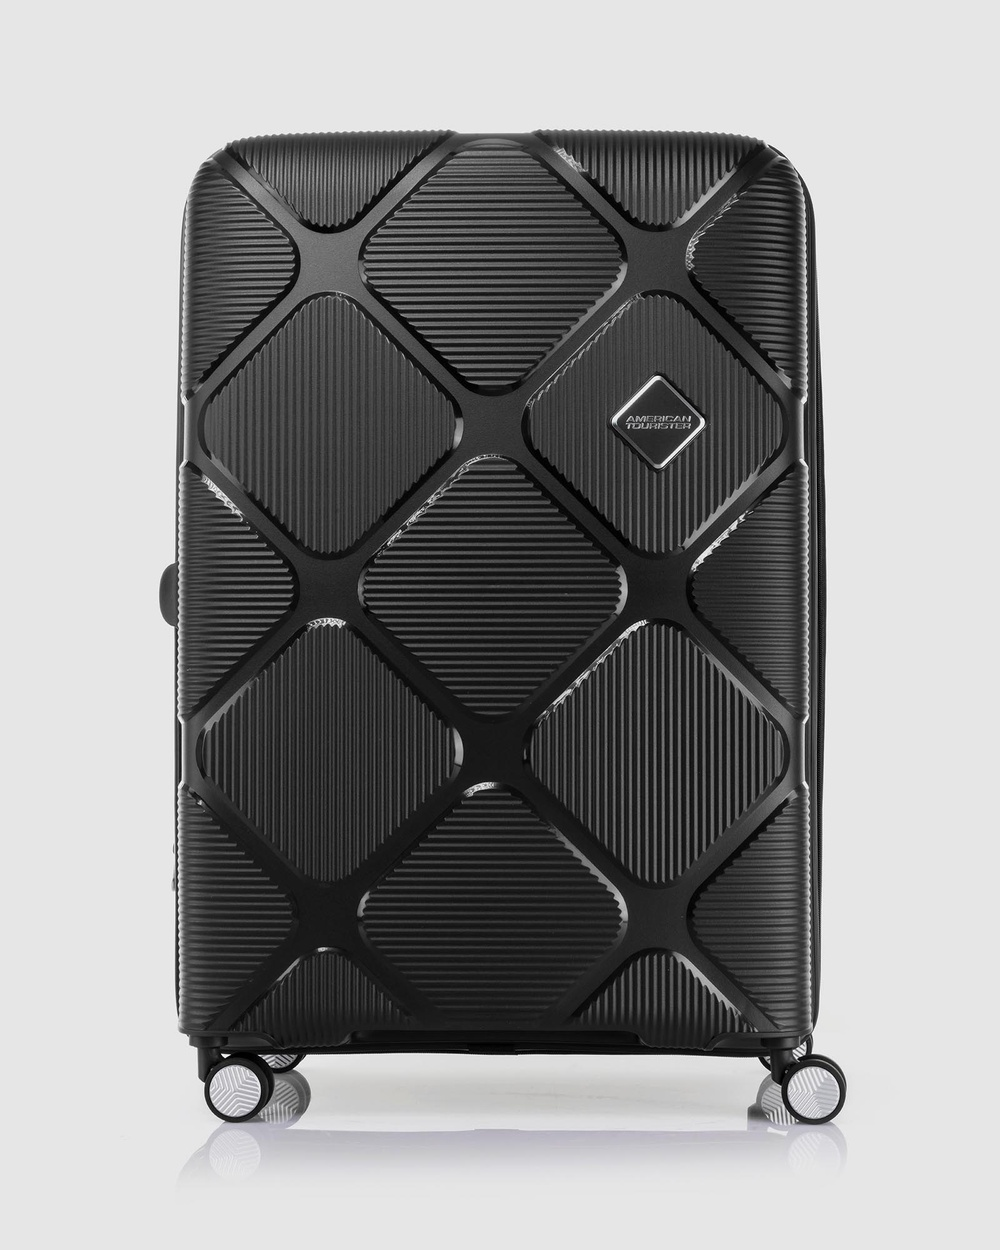 American Tourister Instagon Spinner 81 30 Travel and Luggage Jet Black 81-30